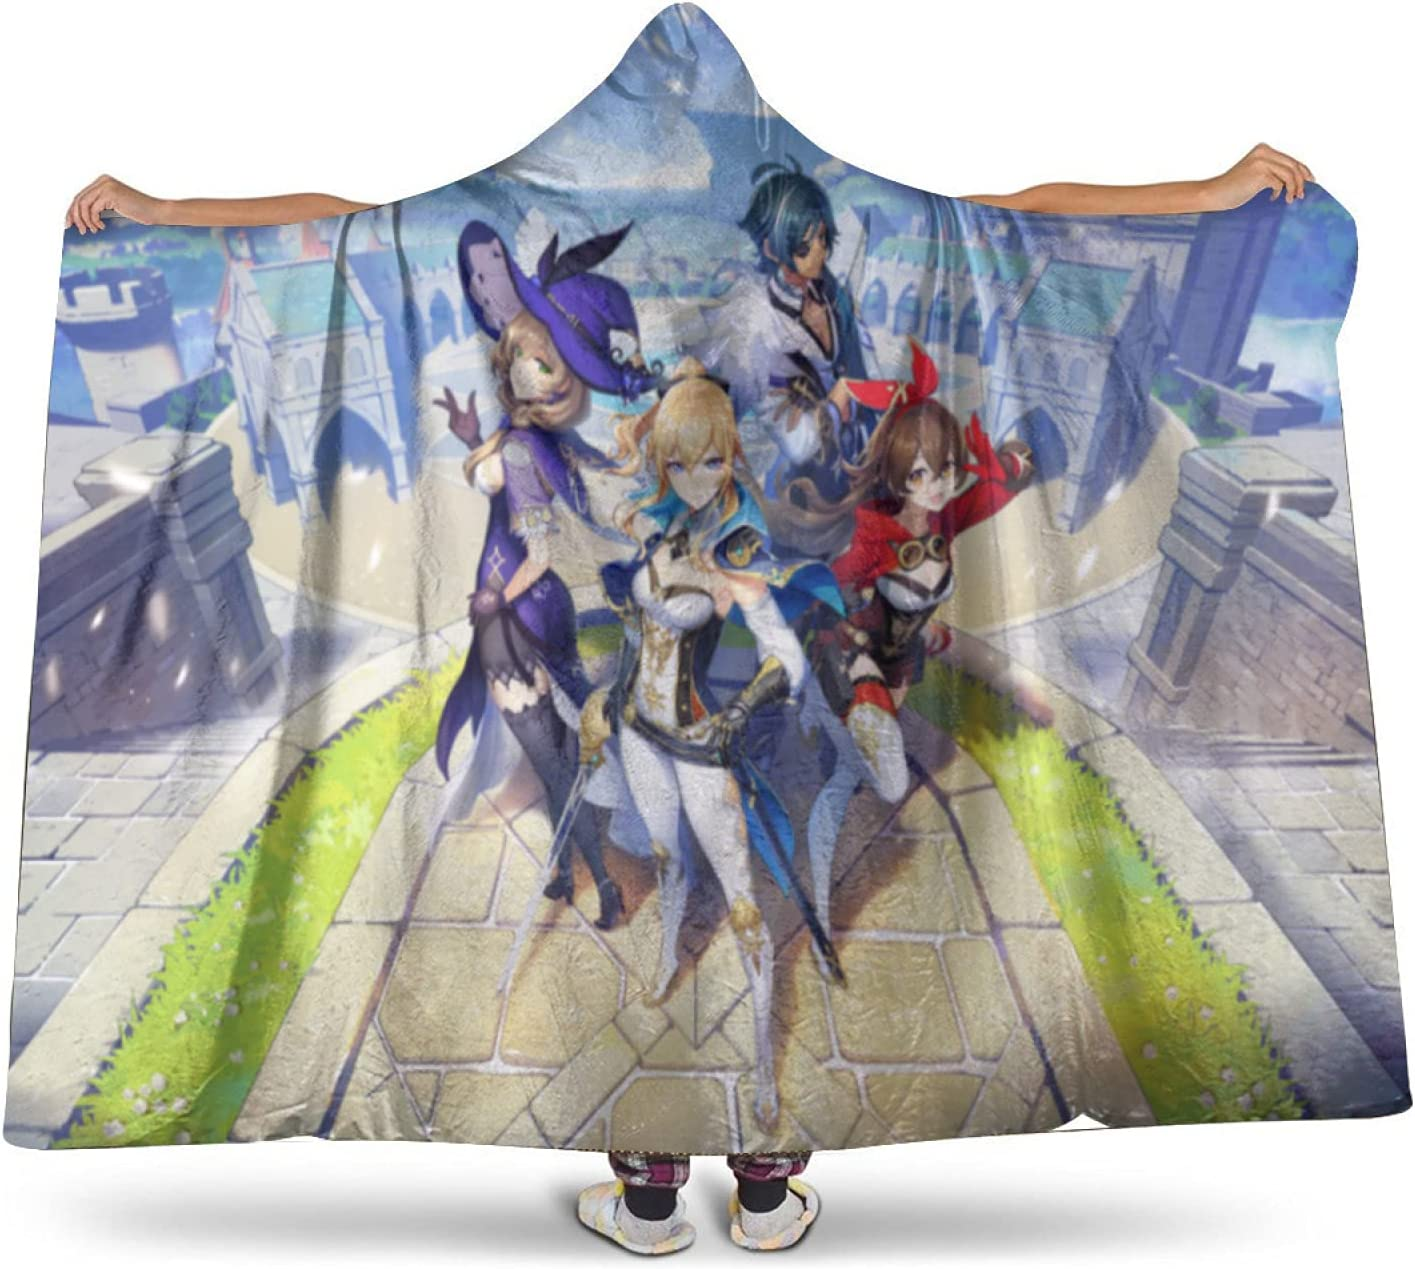 Same day shipping Genshin Impact Hoodie Cover Comfy wi Warm Plush Blanket Wearable Store